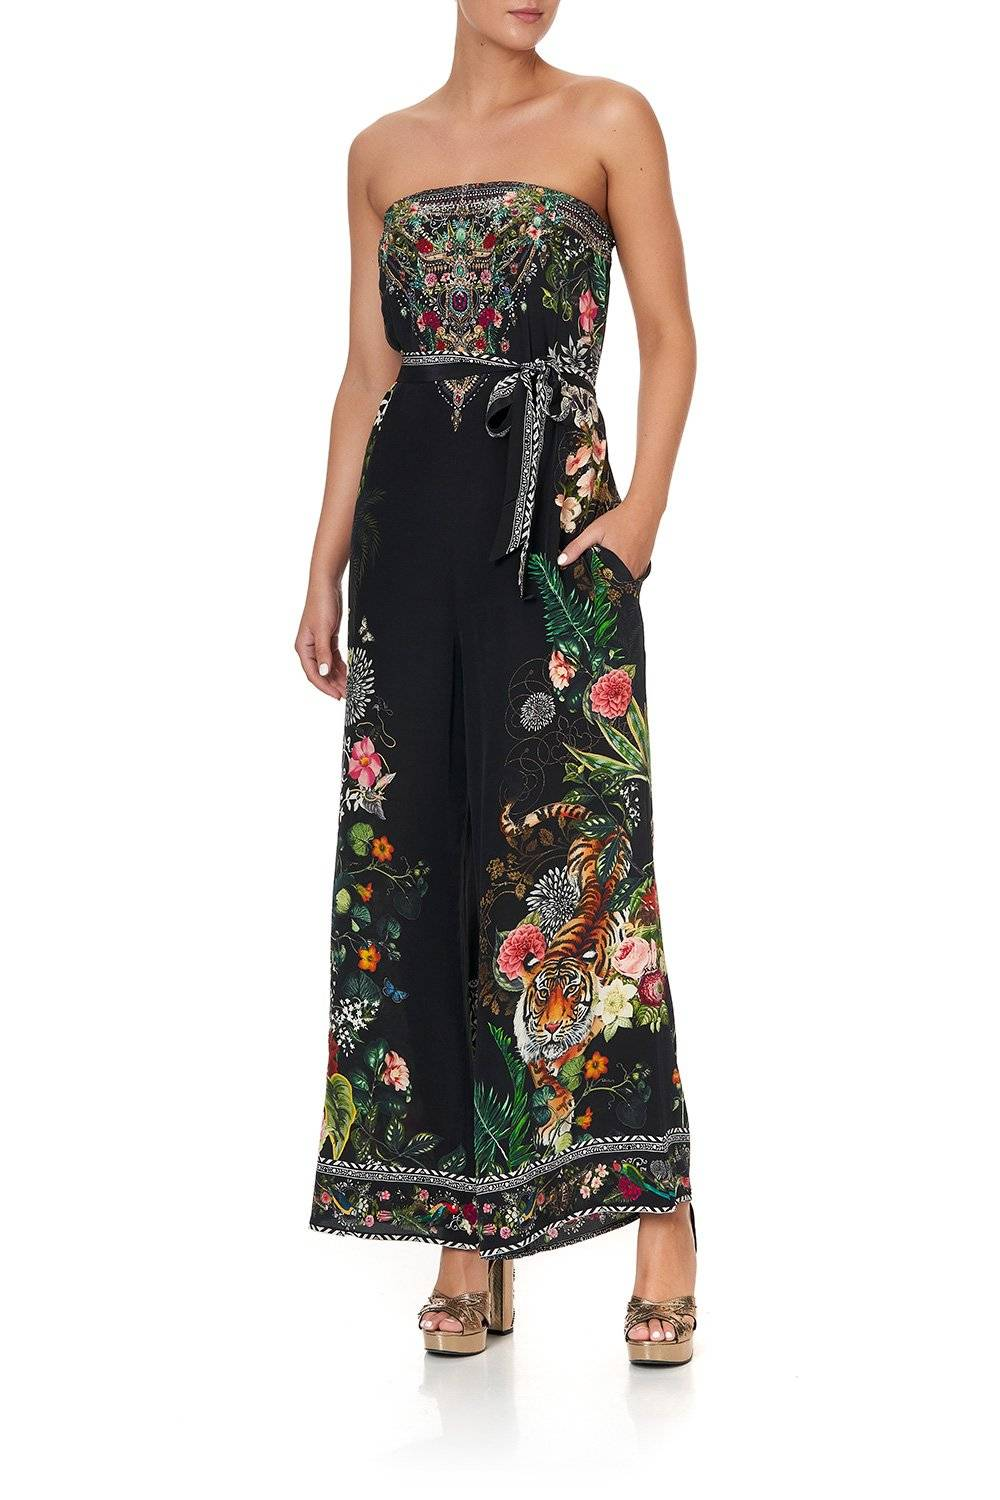 RAISED WITH WOLVES STRAPLESS JUMPSUIT